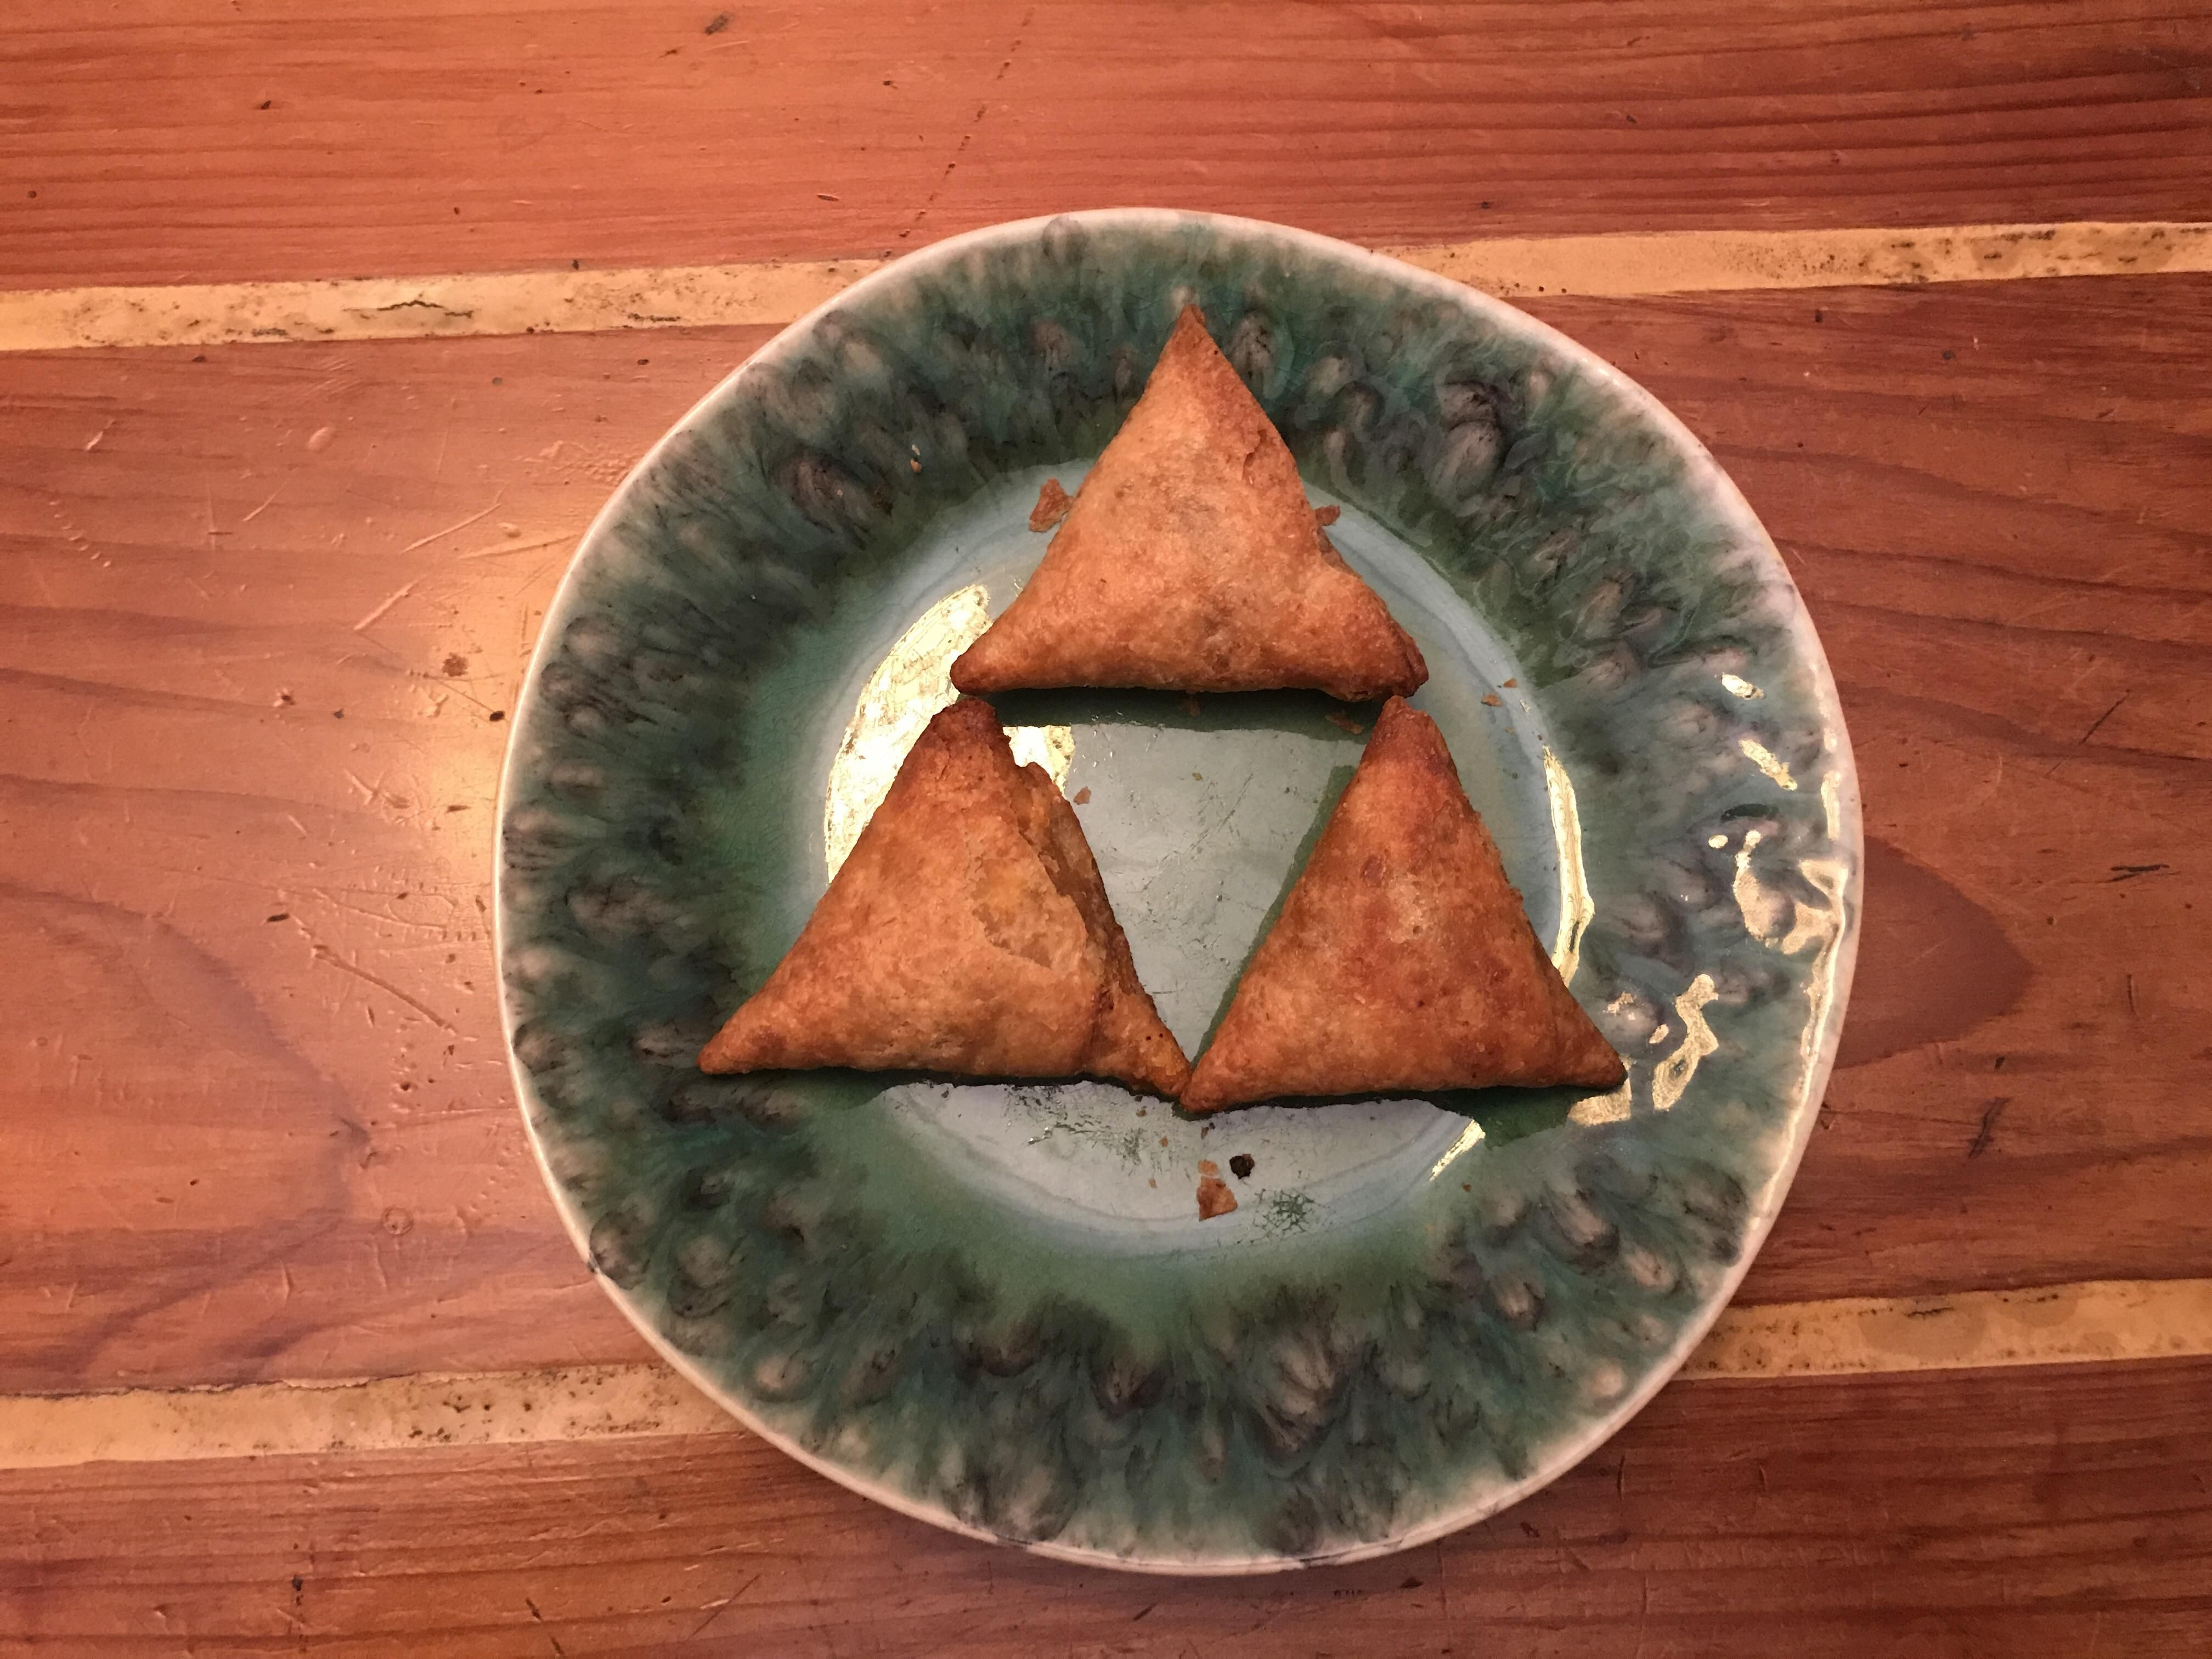 May the Goddess Hylia bless this meal